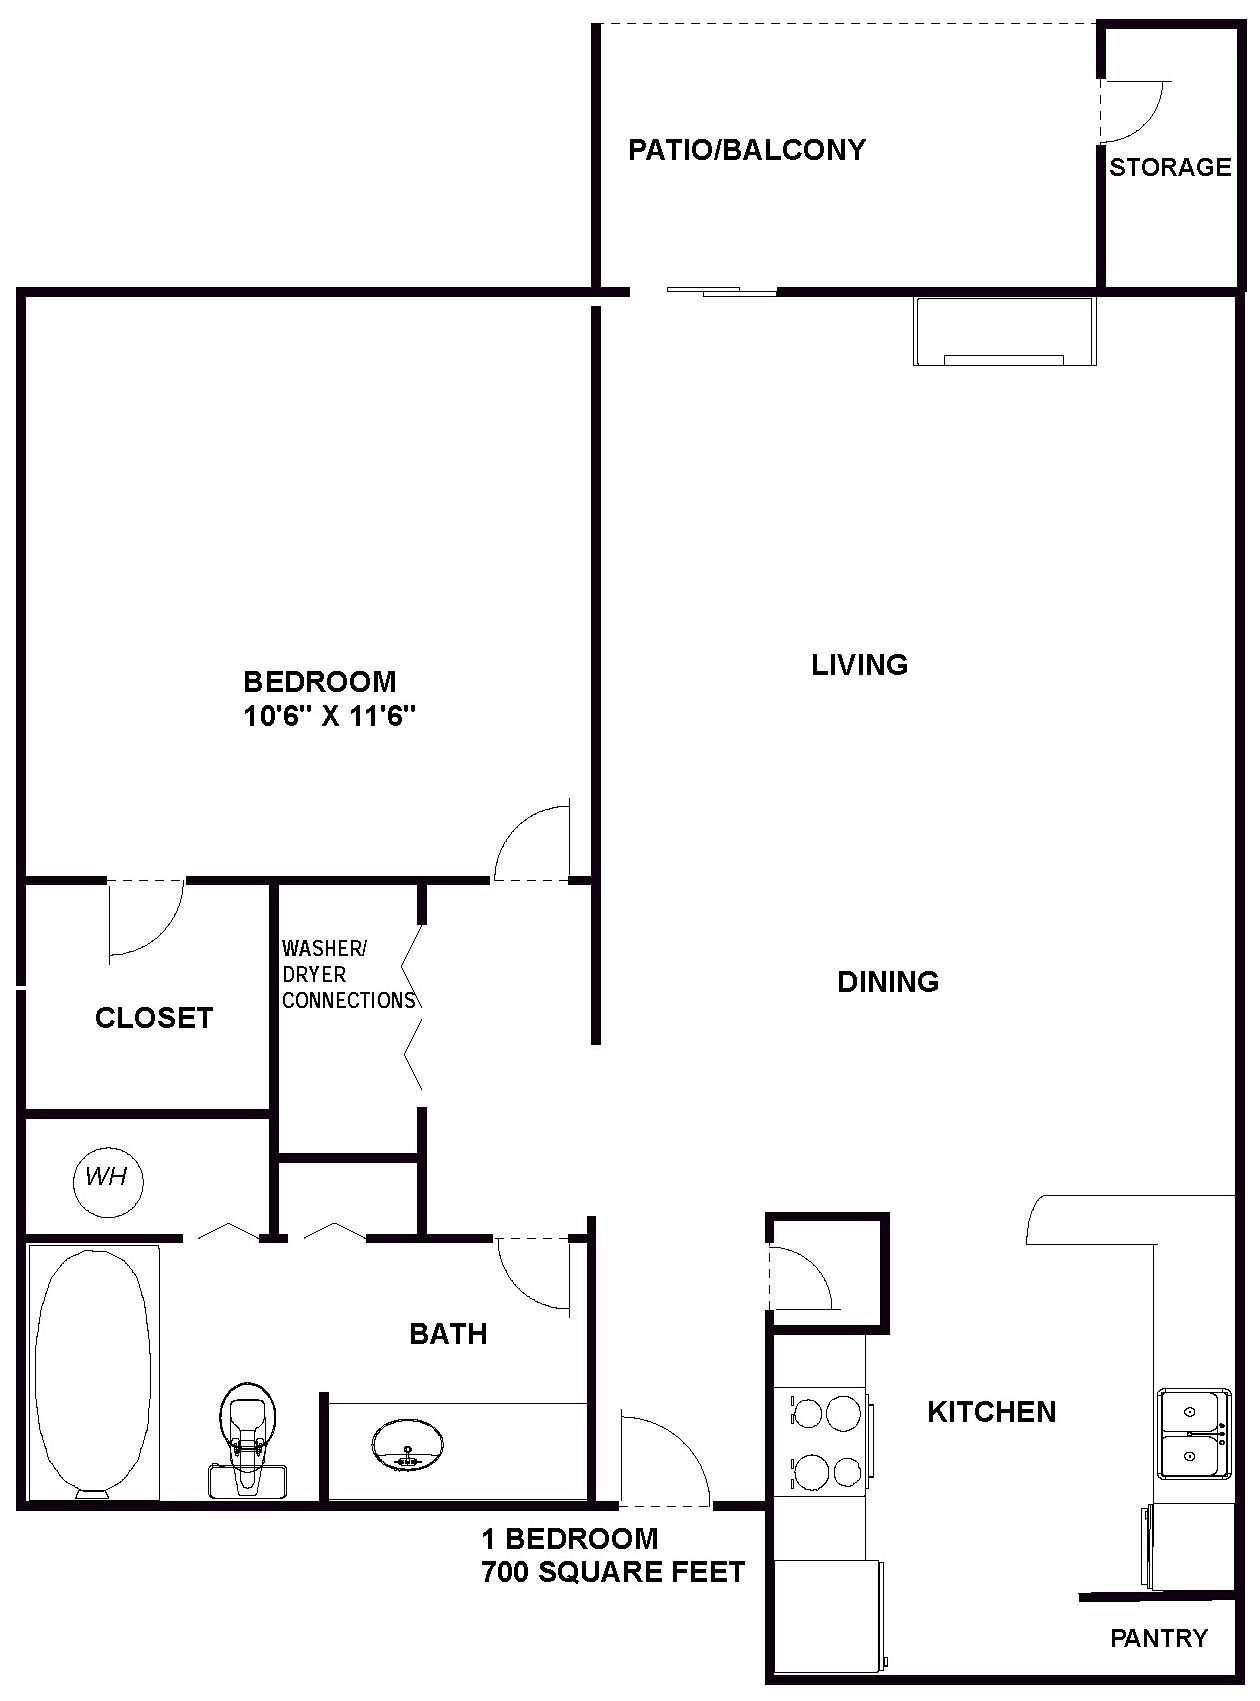 Image result for 1 bedroom 700 sq ft house plans   House ...